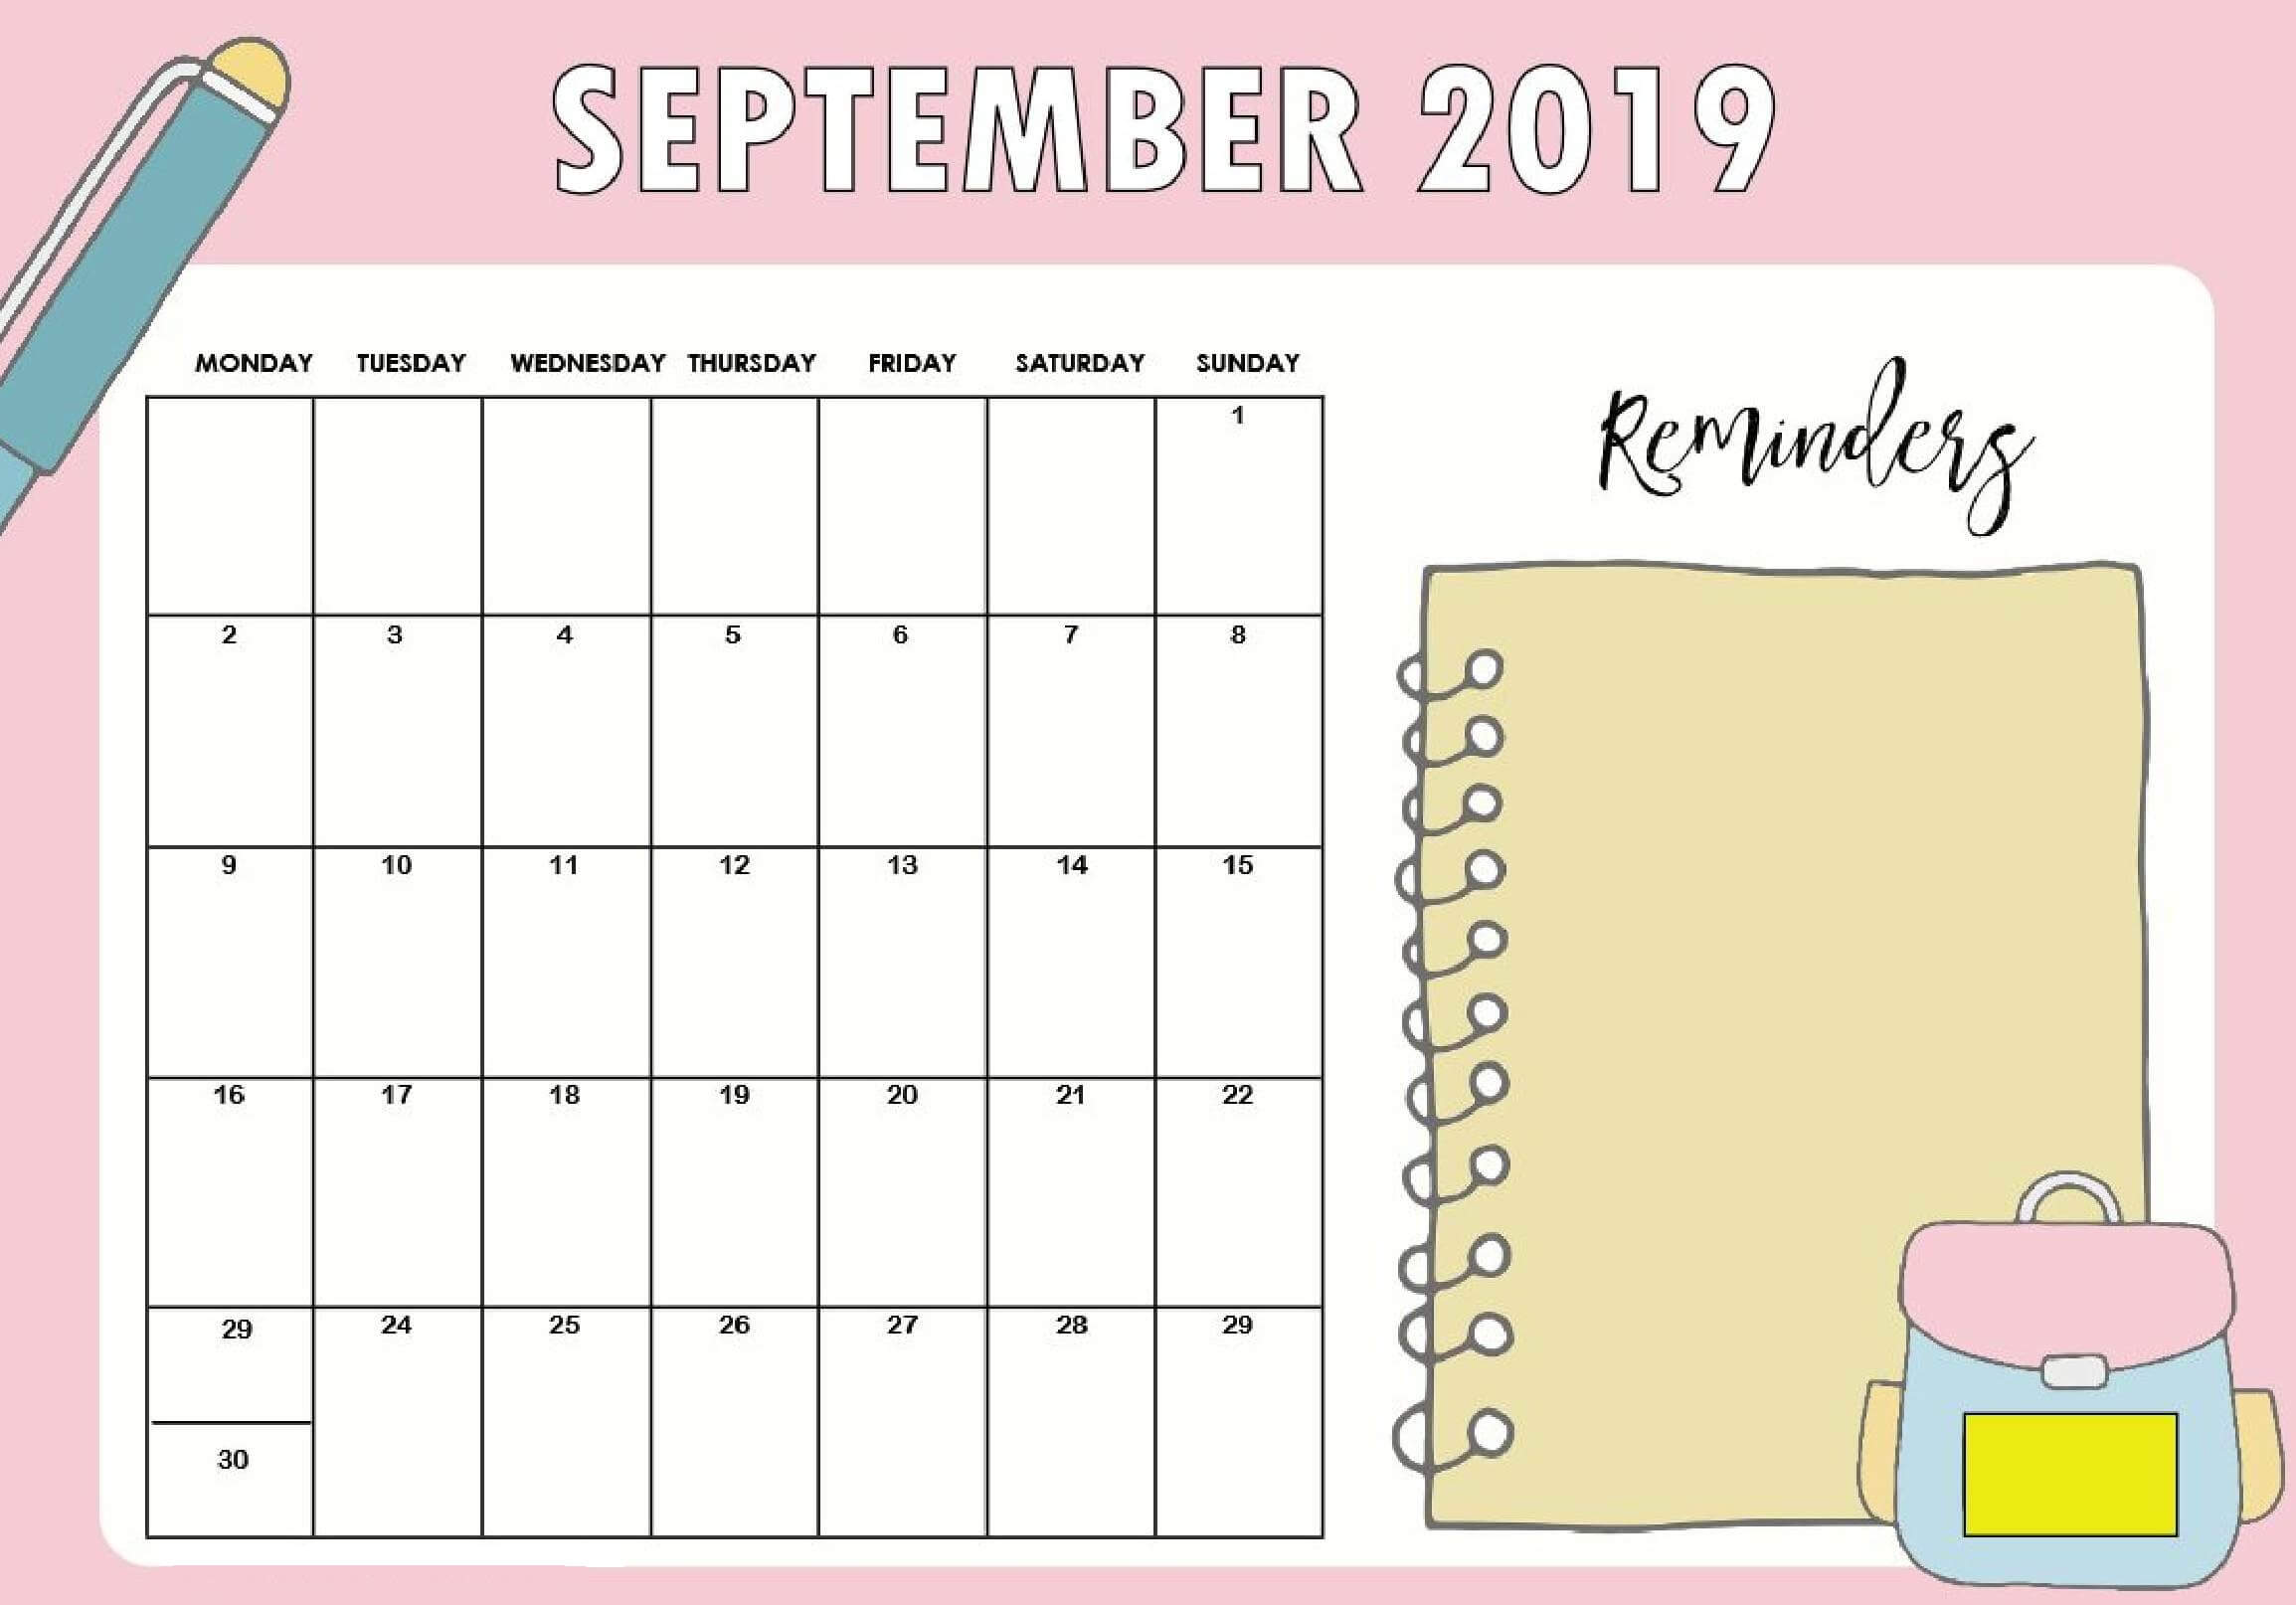 September 2019 Calendar UK School Holidays